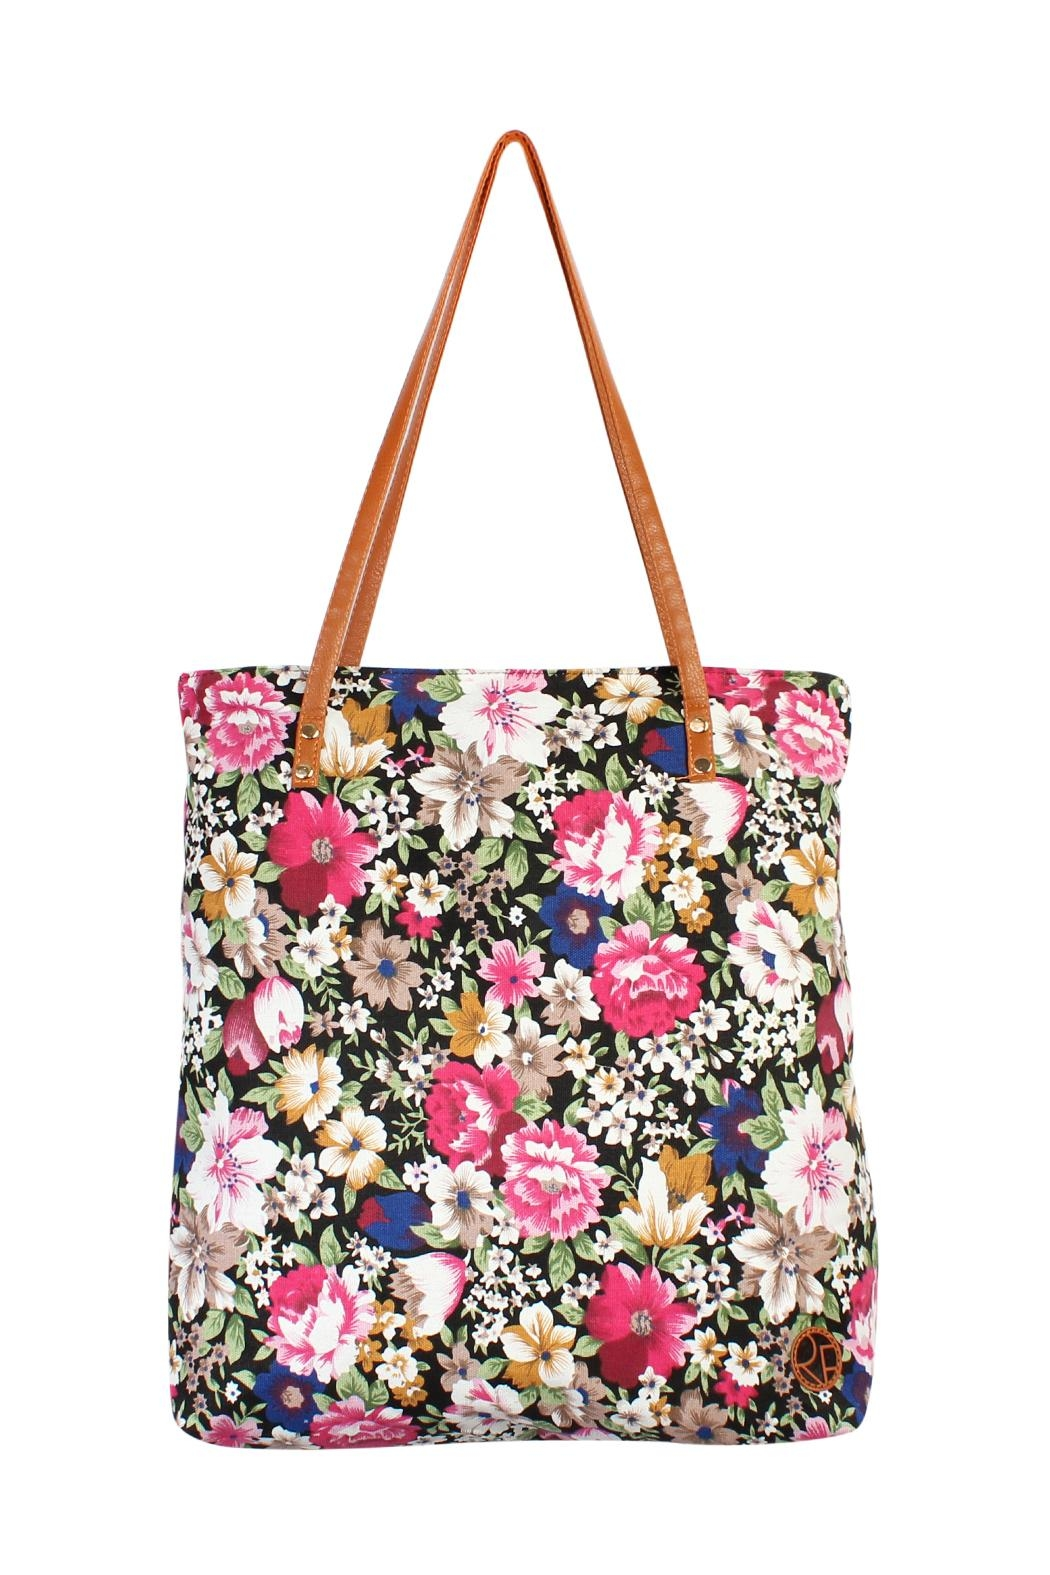 Riah Fashion Floral Inclined Tote-Bag - Main Image